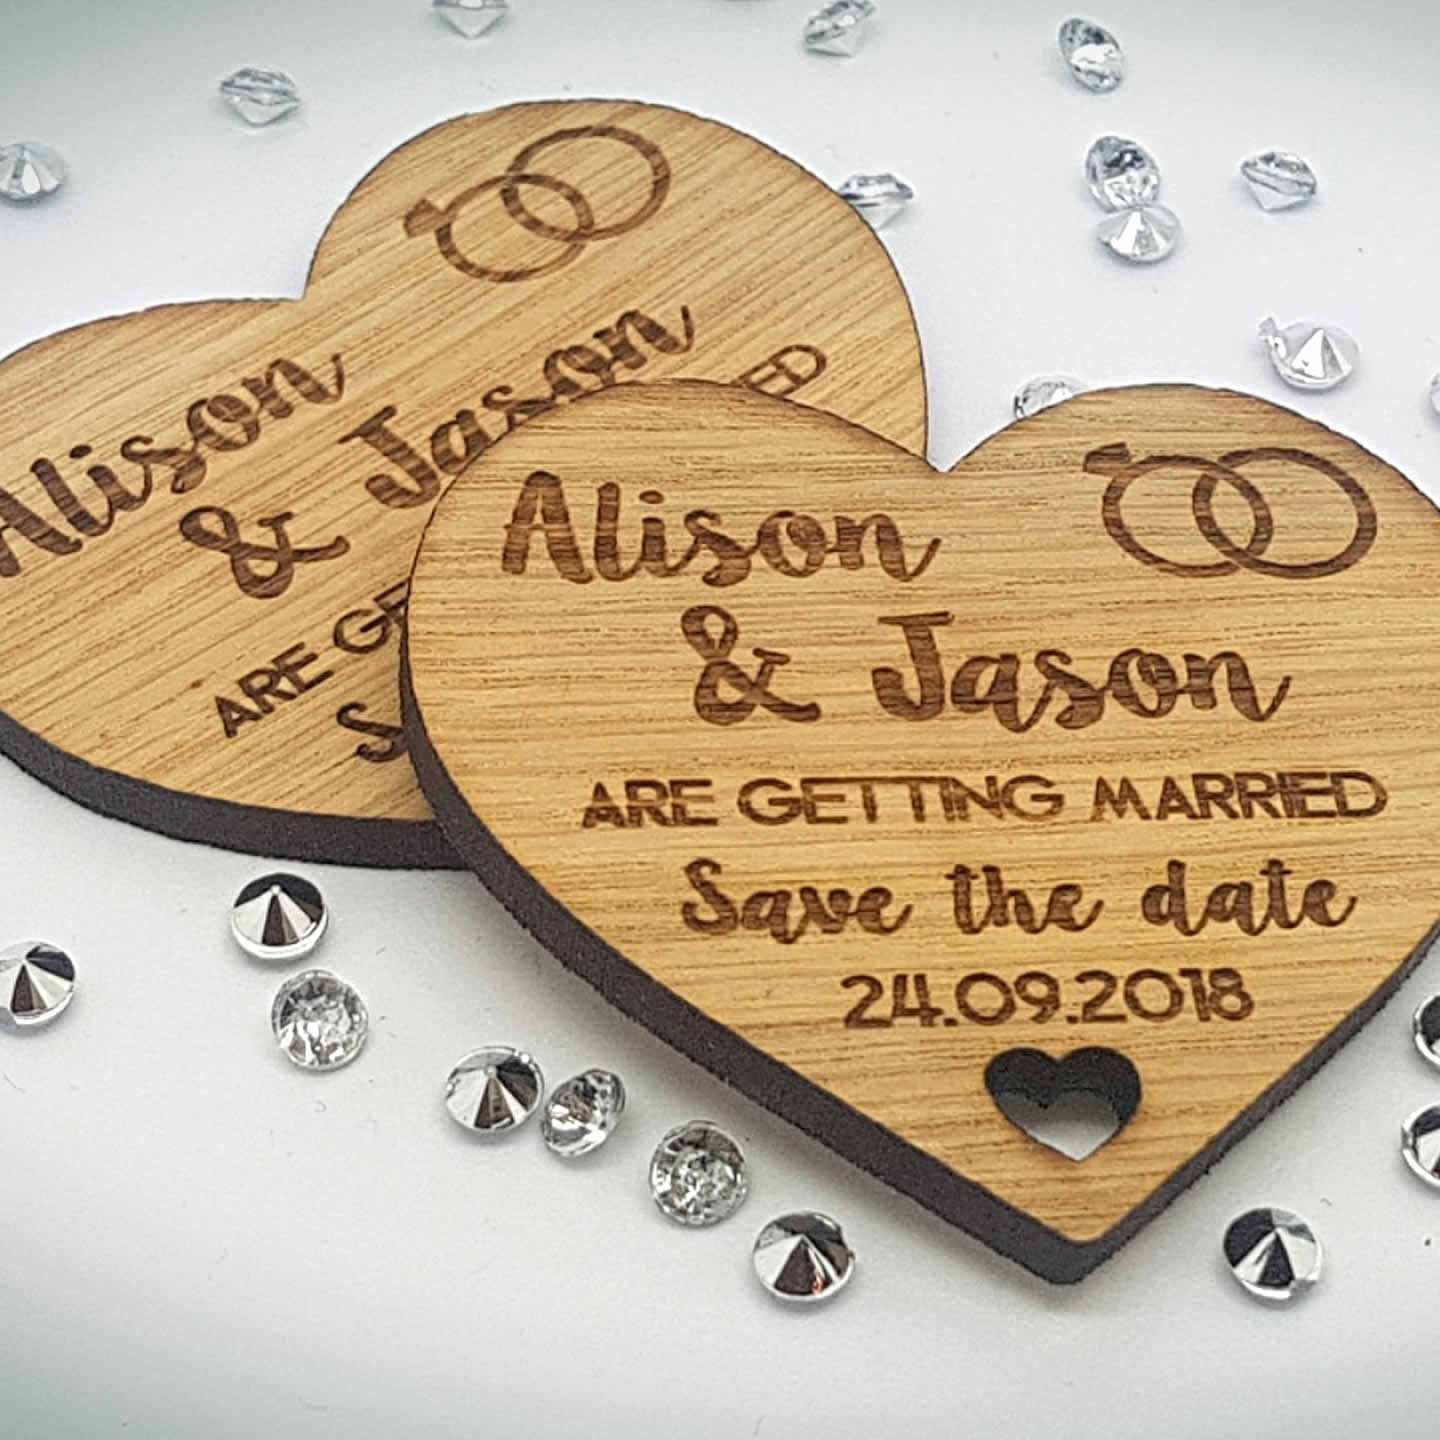 Little Gifts With Love - Personalised Engraved Rustic Oak Wooden Heart Save The Date Fridge Magnet Invites